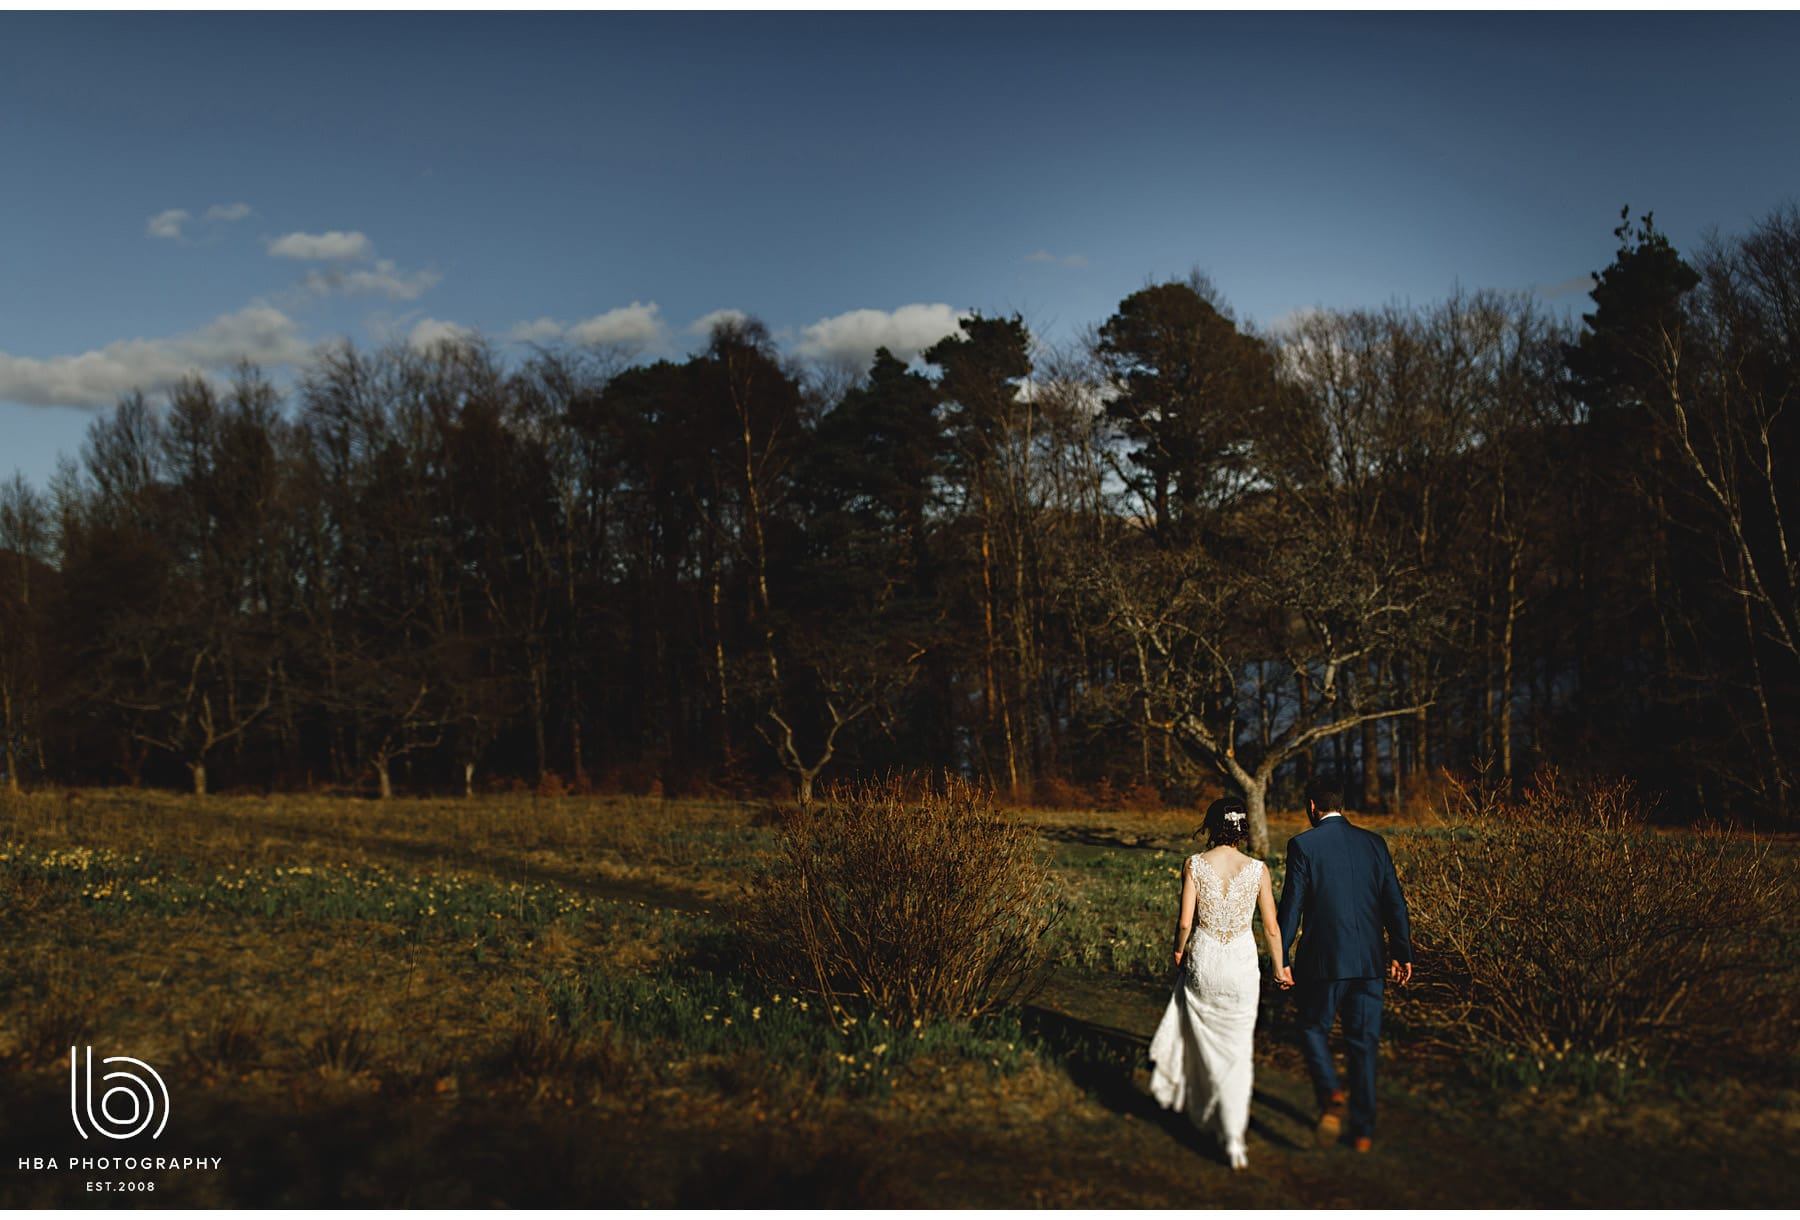 the bride & groom walking in the estate